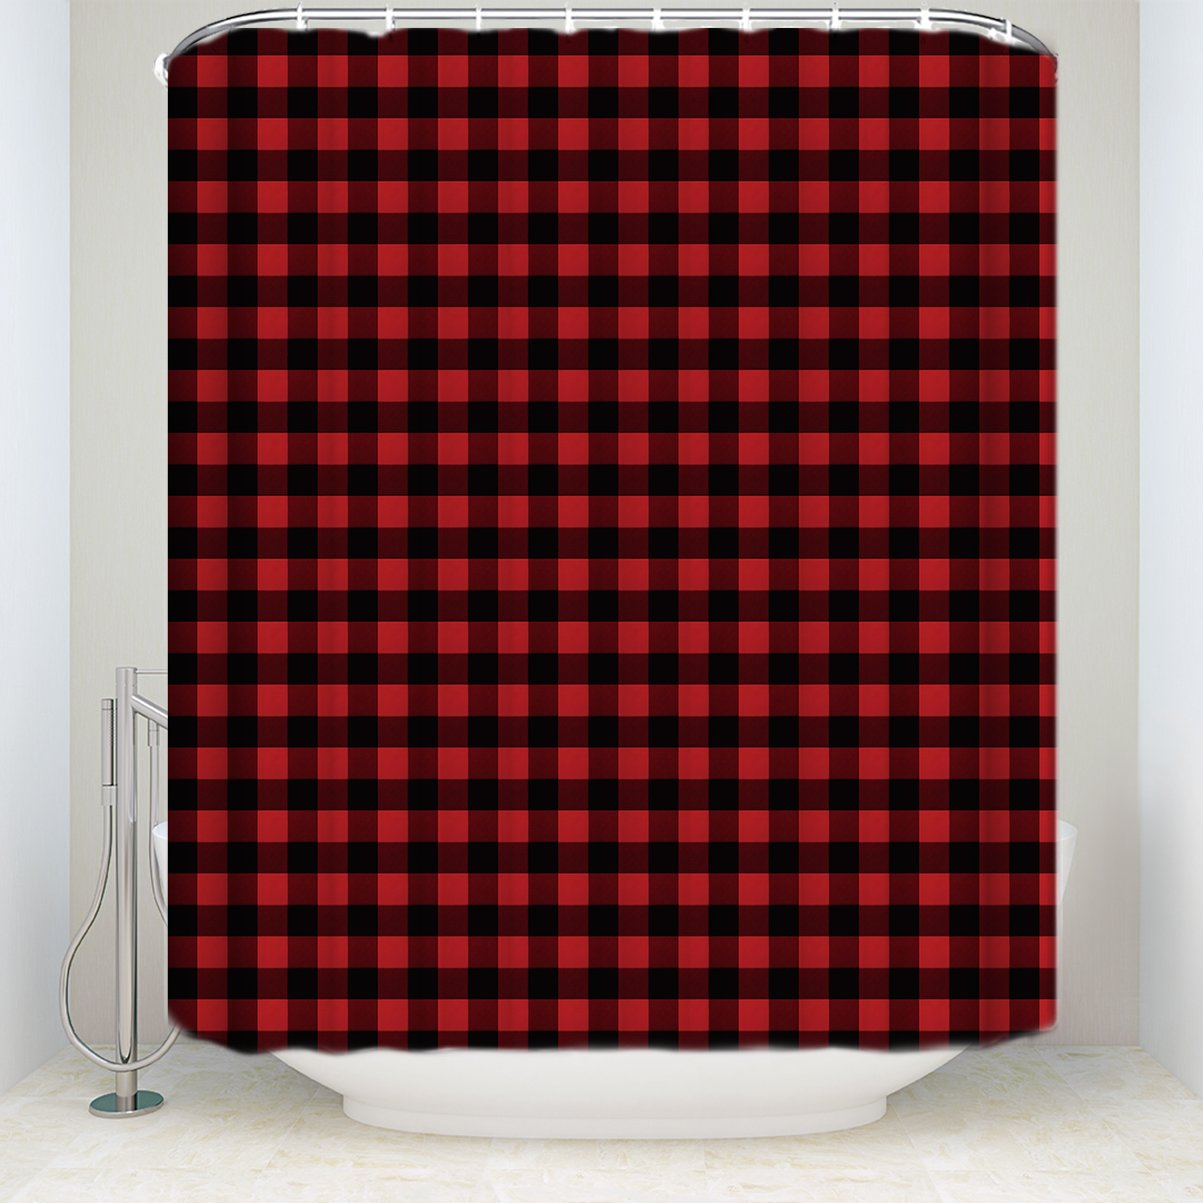 ZL Home Red Black Buffalo Plaid Shower Curtains Rustic Style Curtain Collections Polyester Waterproof Fabric Bath Tub Hotel